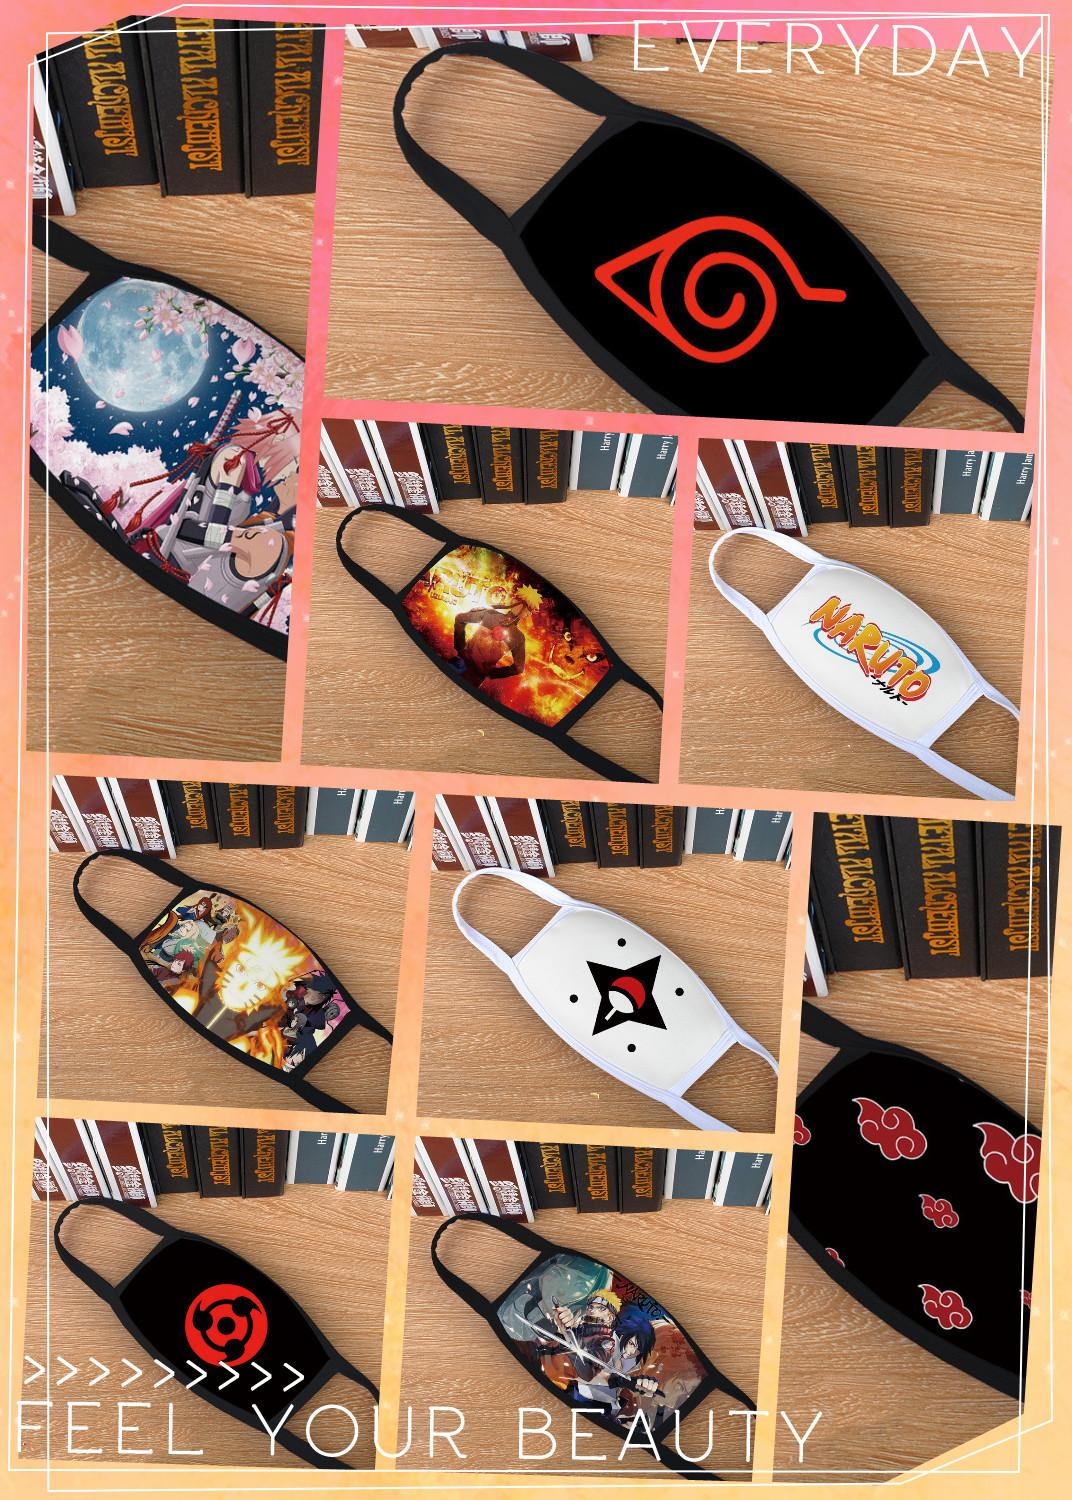 Fashion Anime Naruto Akatsuki Uchiha Itachi Sharingan Cosplay Masks Konoha Kakashi Teens Cotton Half Face Breathable Mask New